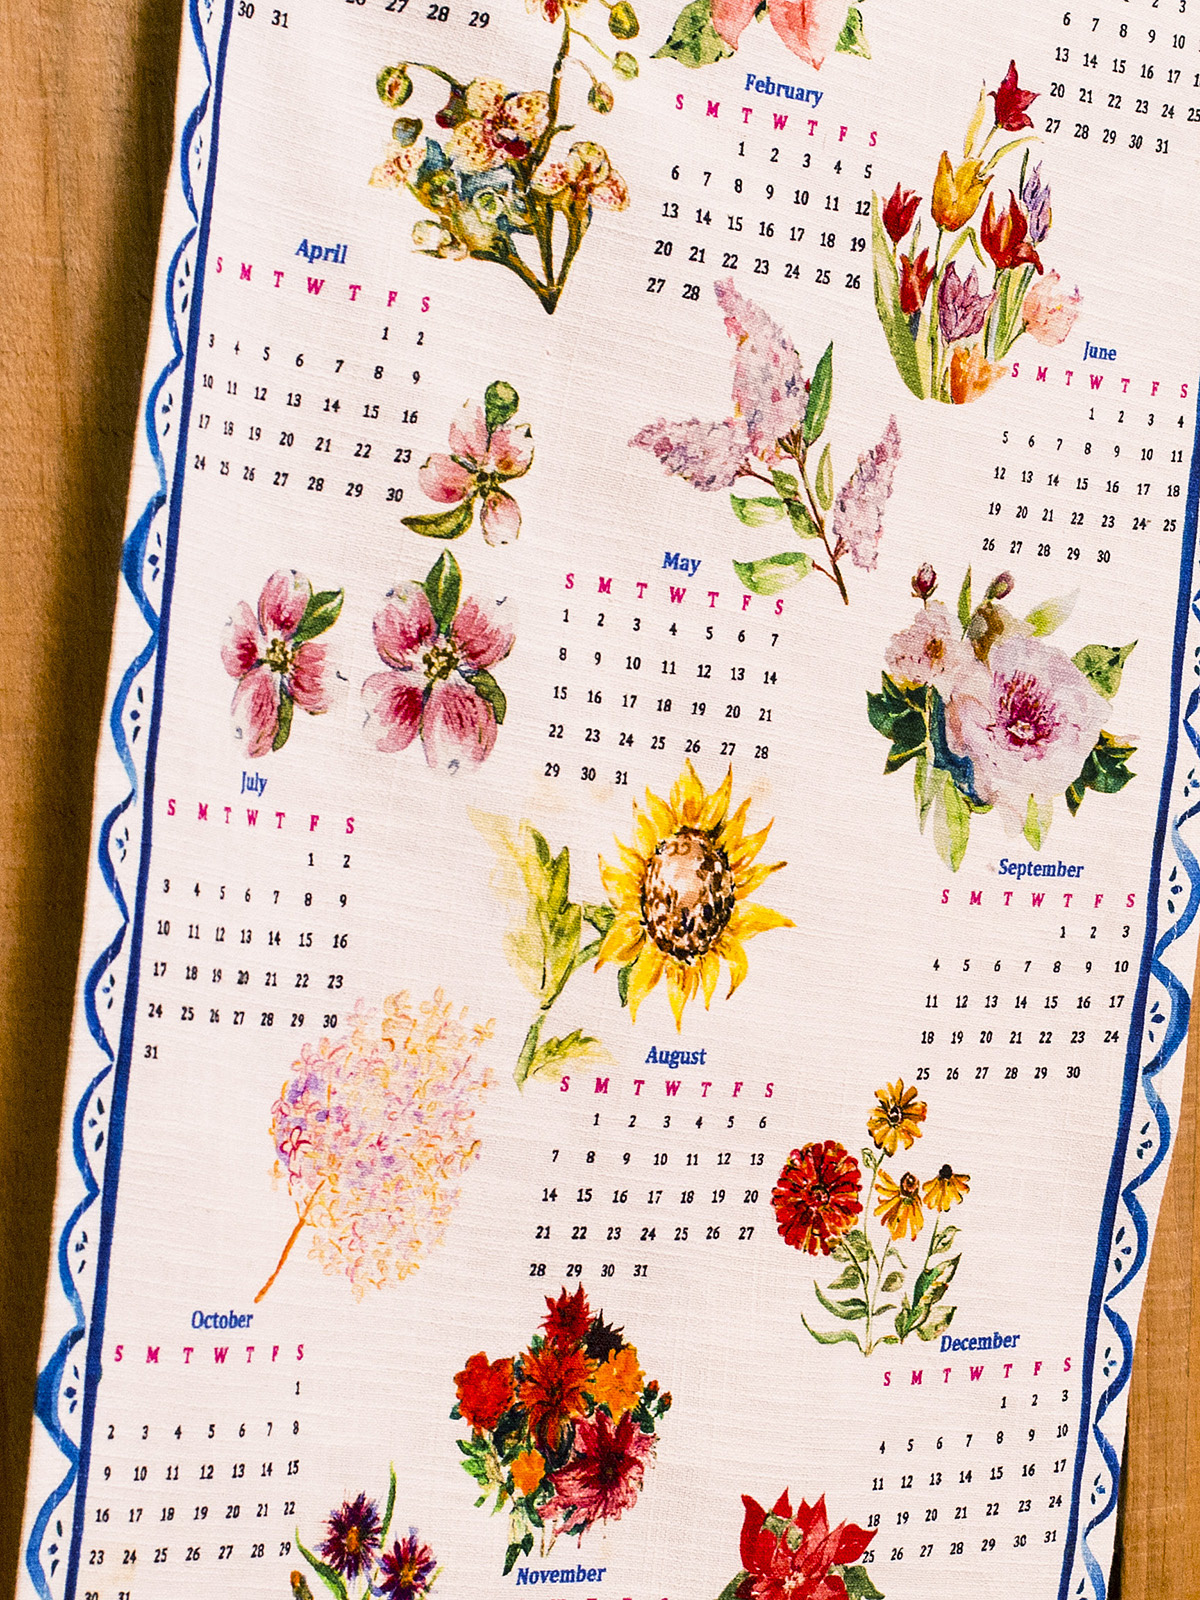 APRIL CORNELL A YEAR IN FLOWERS TEA TOWEL-2